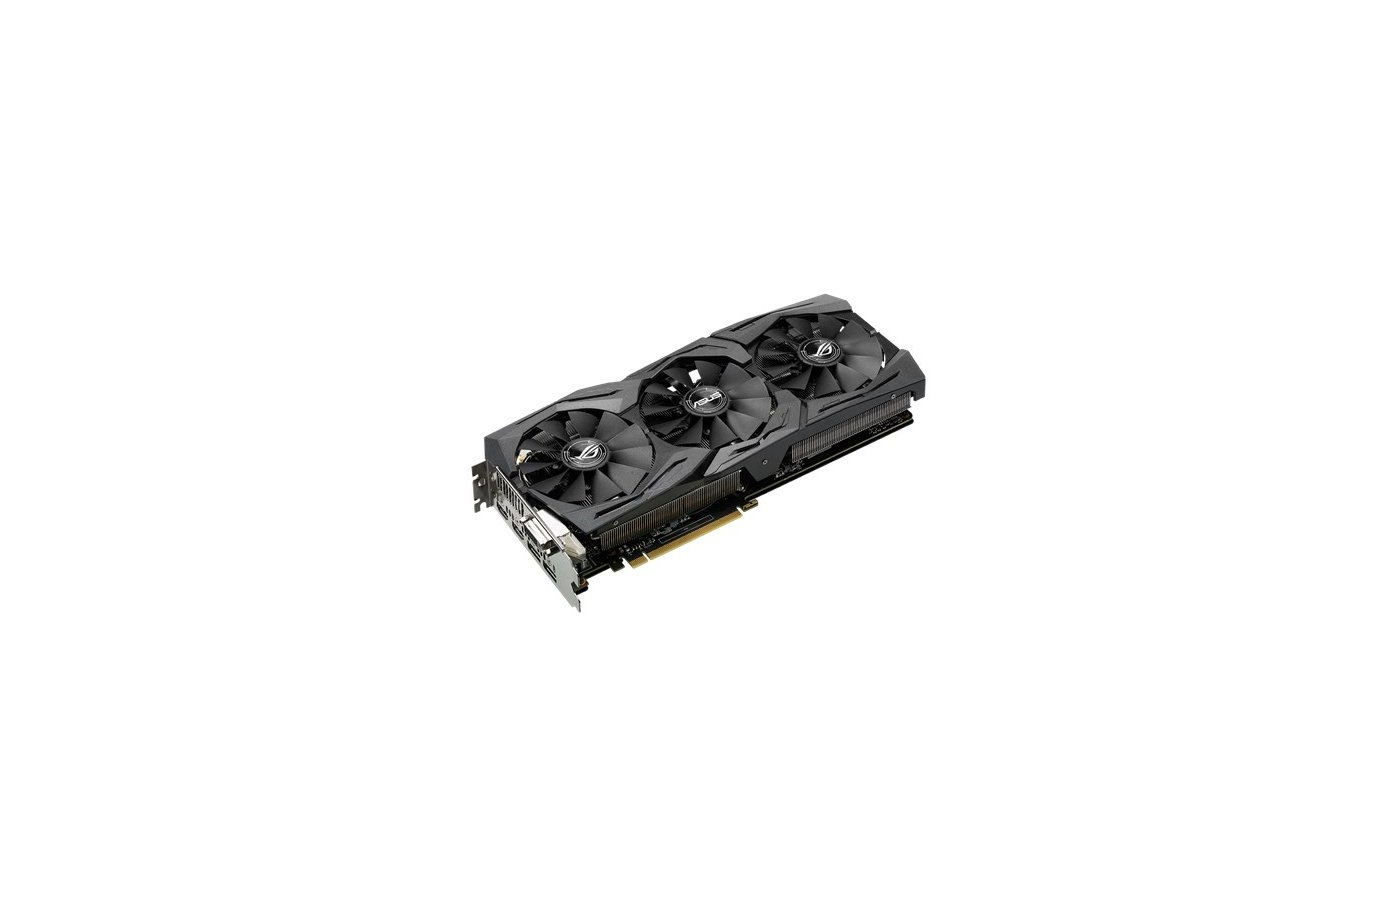 Видеокарта Asus PCI-E STRIX-GTX1070-O8G-GAMING nVidia GeForce GTX 1070 8192Mb 256bit Ret